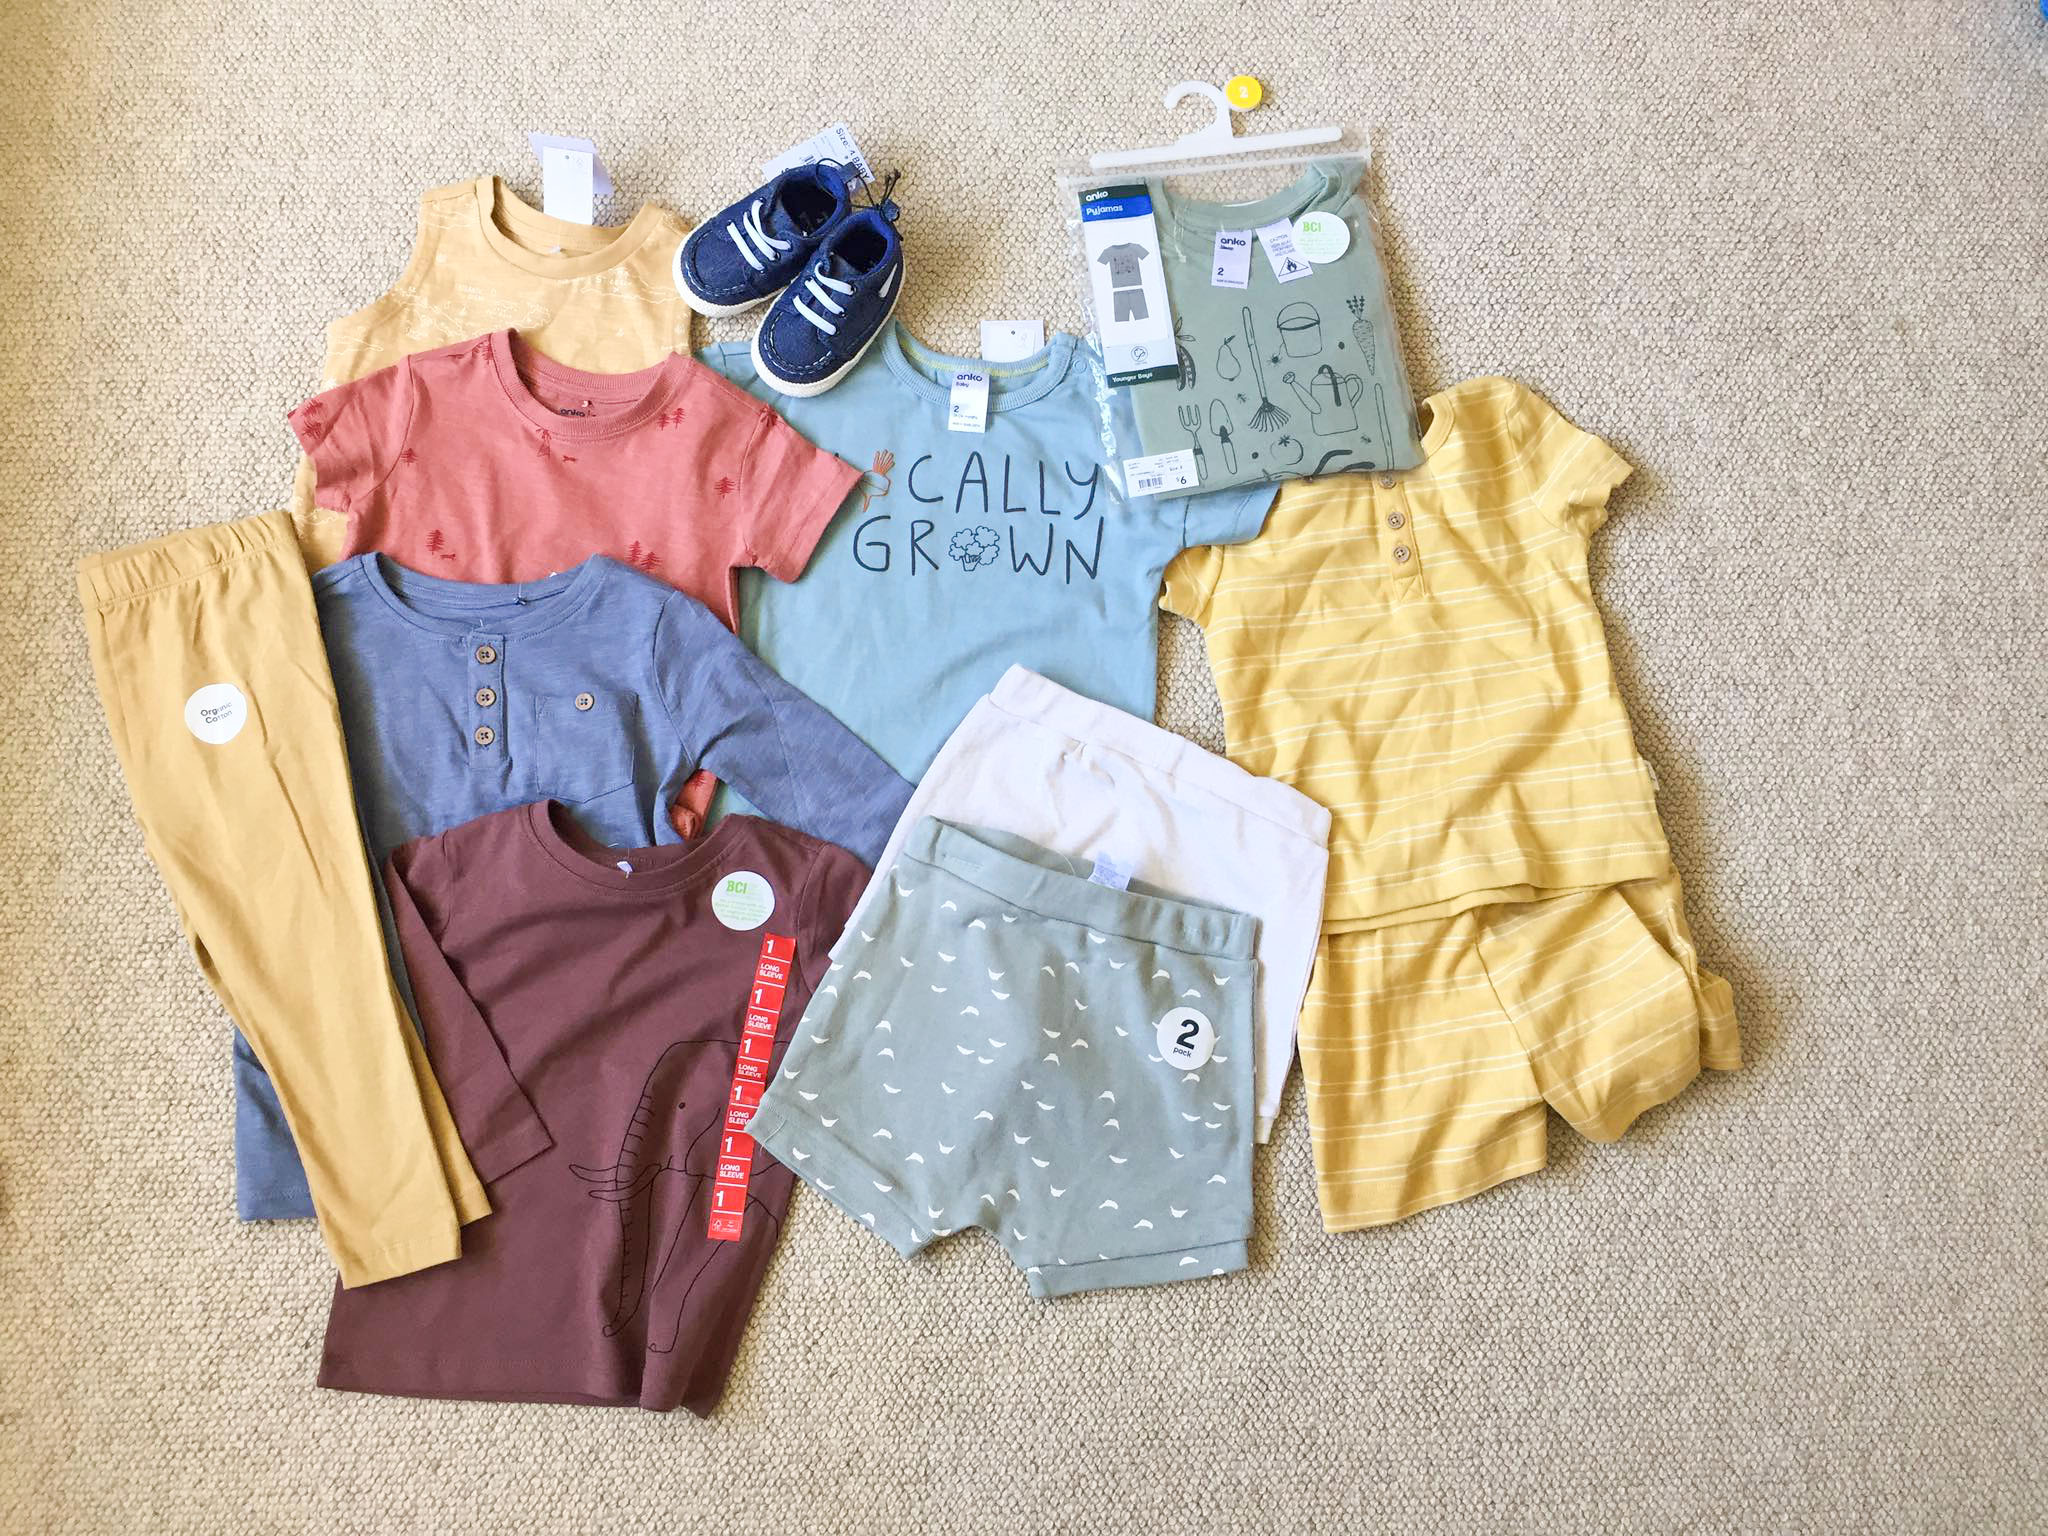 Toddler Clothes: Stylish and Affordable